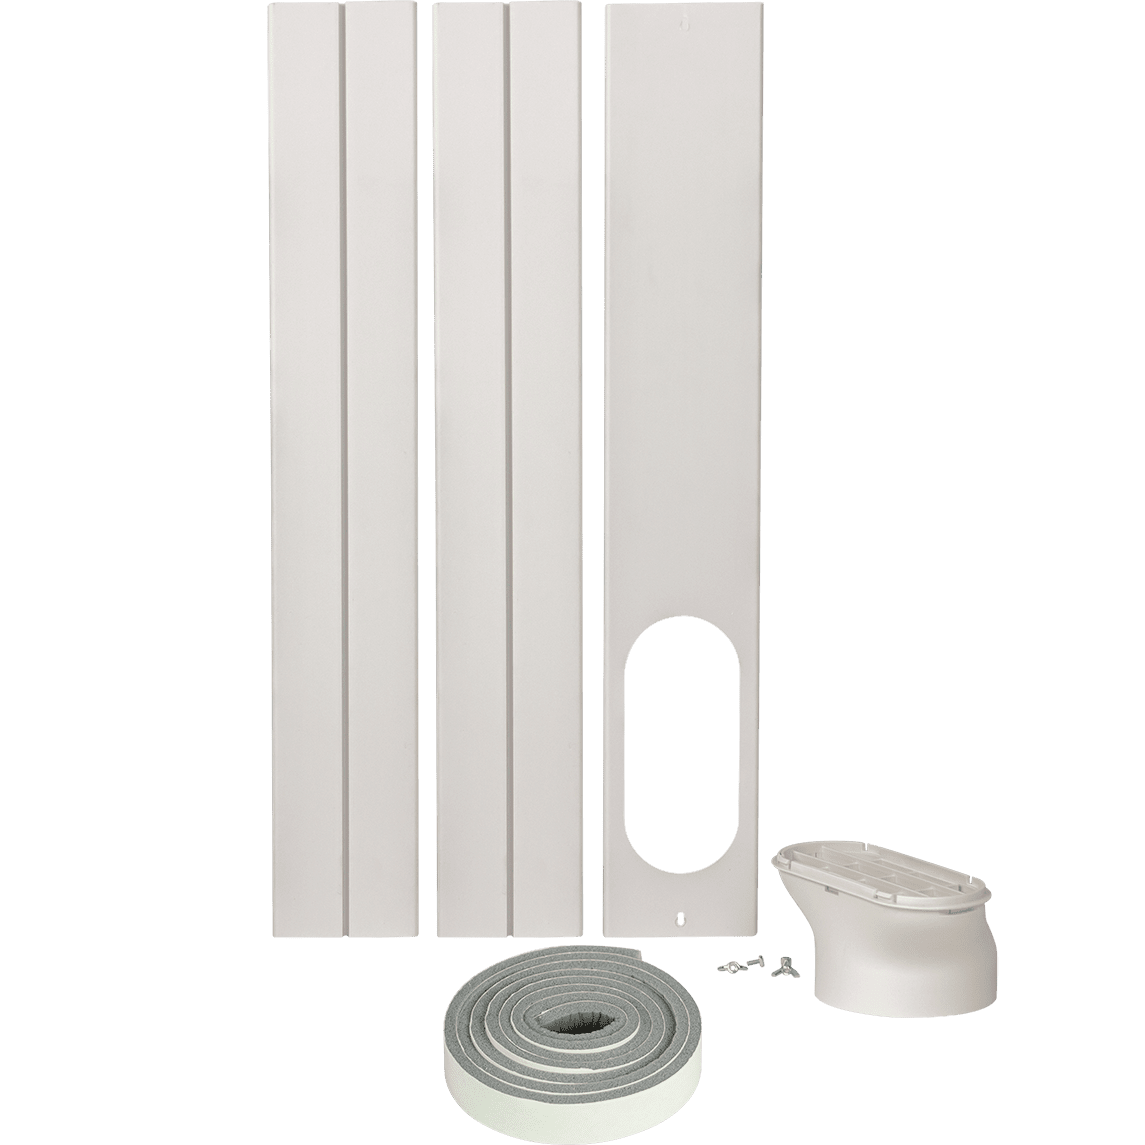 Honeywell Sliding Glass Door Kit for Portable AC HL Models